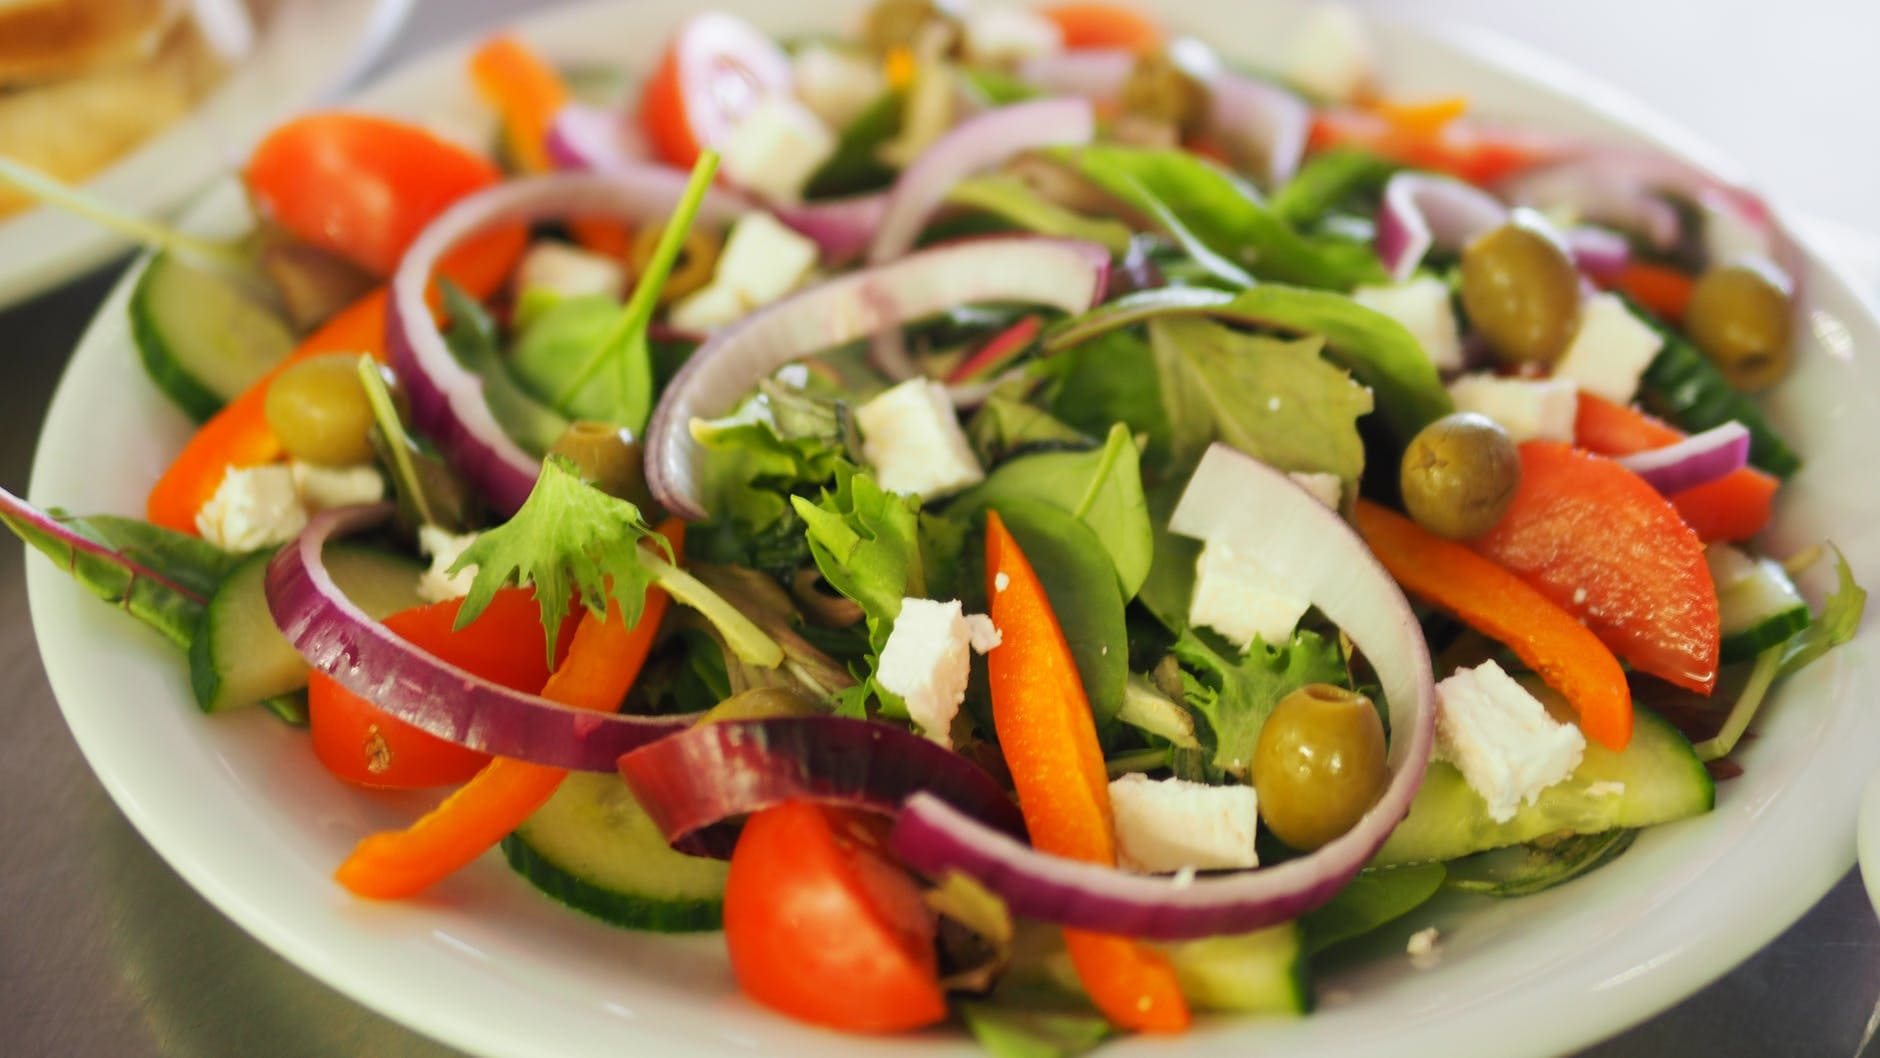 How to make a salad easy and simple